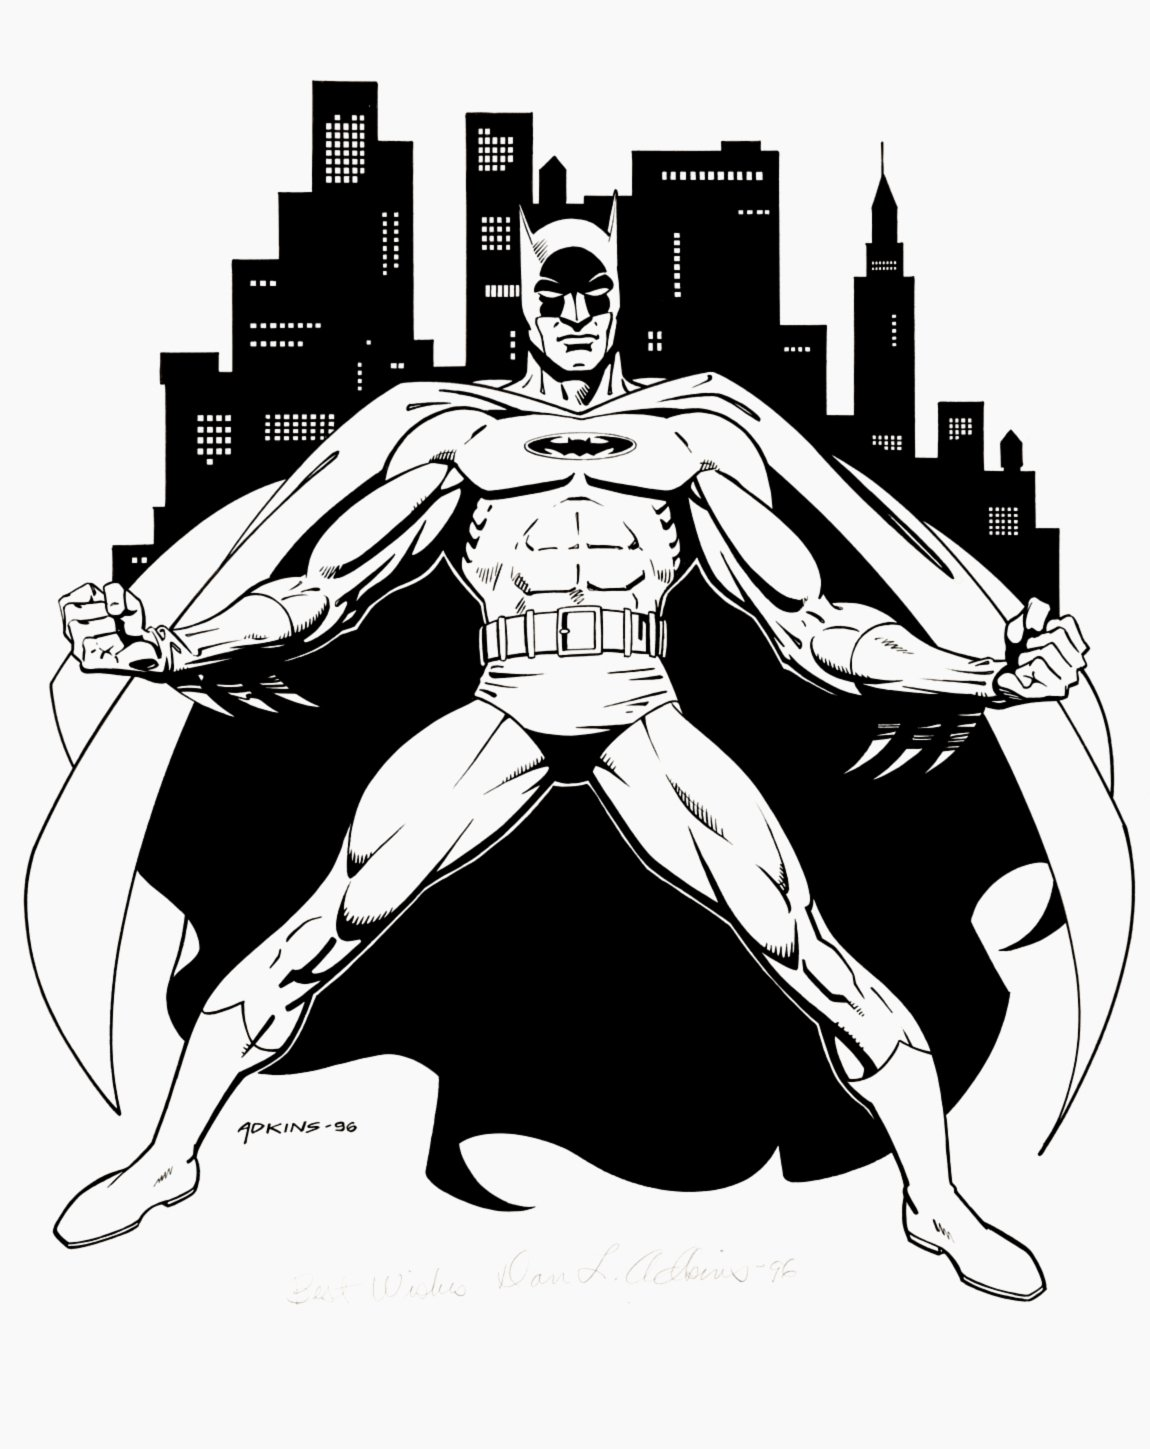 Large Batman Illustration SOLD LIVE ON 'DUELING DEALERS PRO-AM' EPISODE #7 PODCAST ON 9-14-2021 (RE-WATCH THIS FUNNY ART SELLING SHOW HERE)